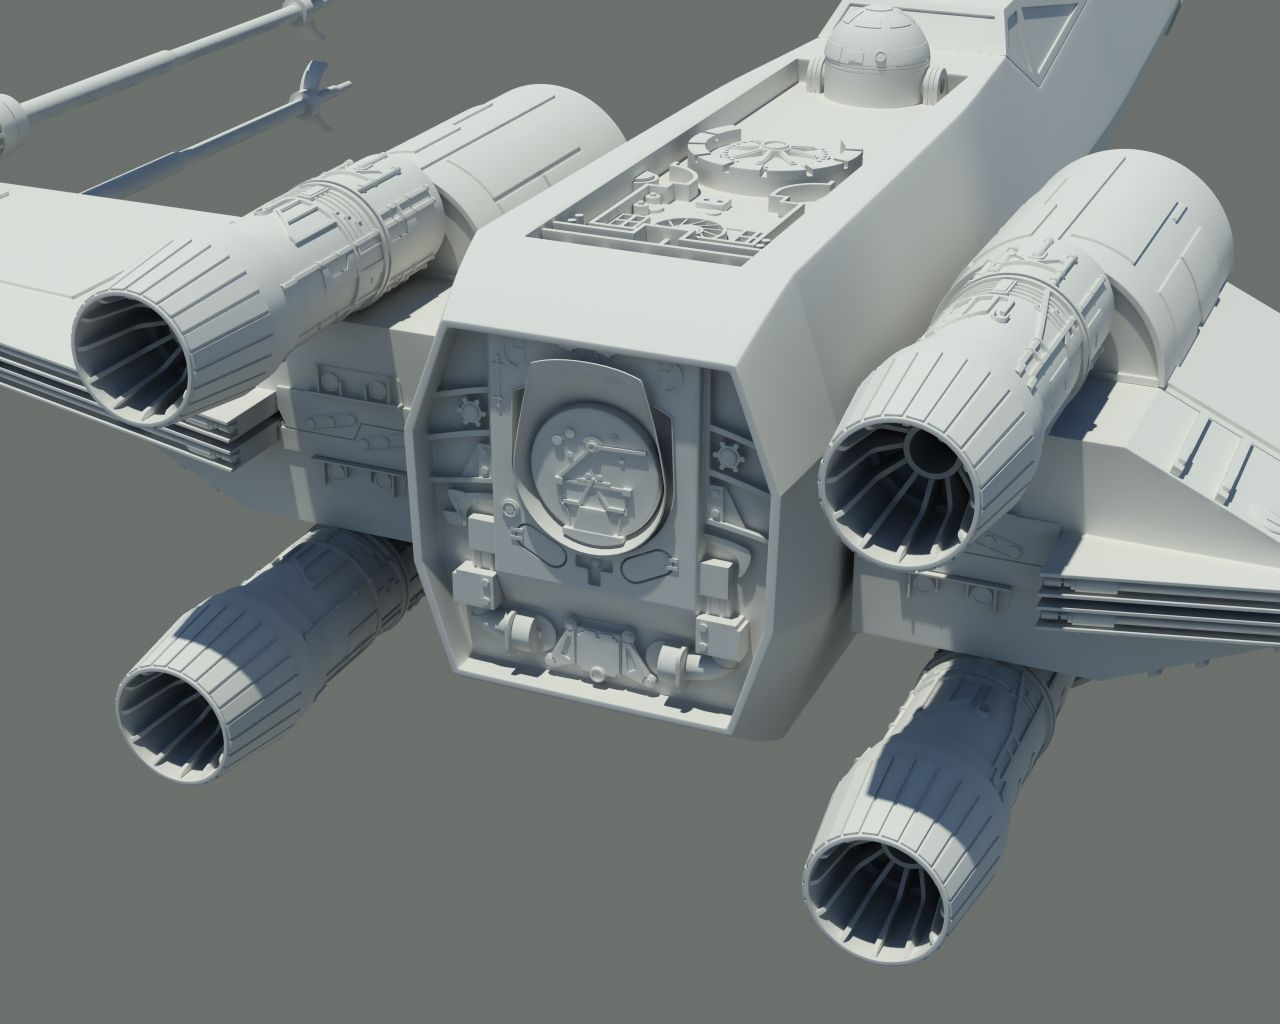 00870 01657g 12801024 x wing fighter pinterest 00870 01657g 12801024 malvernweather Image collections